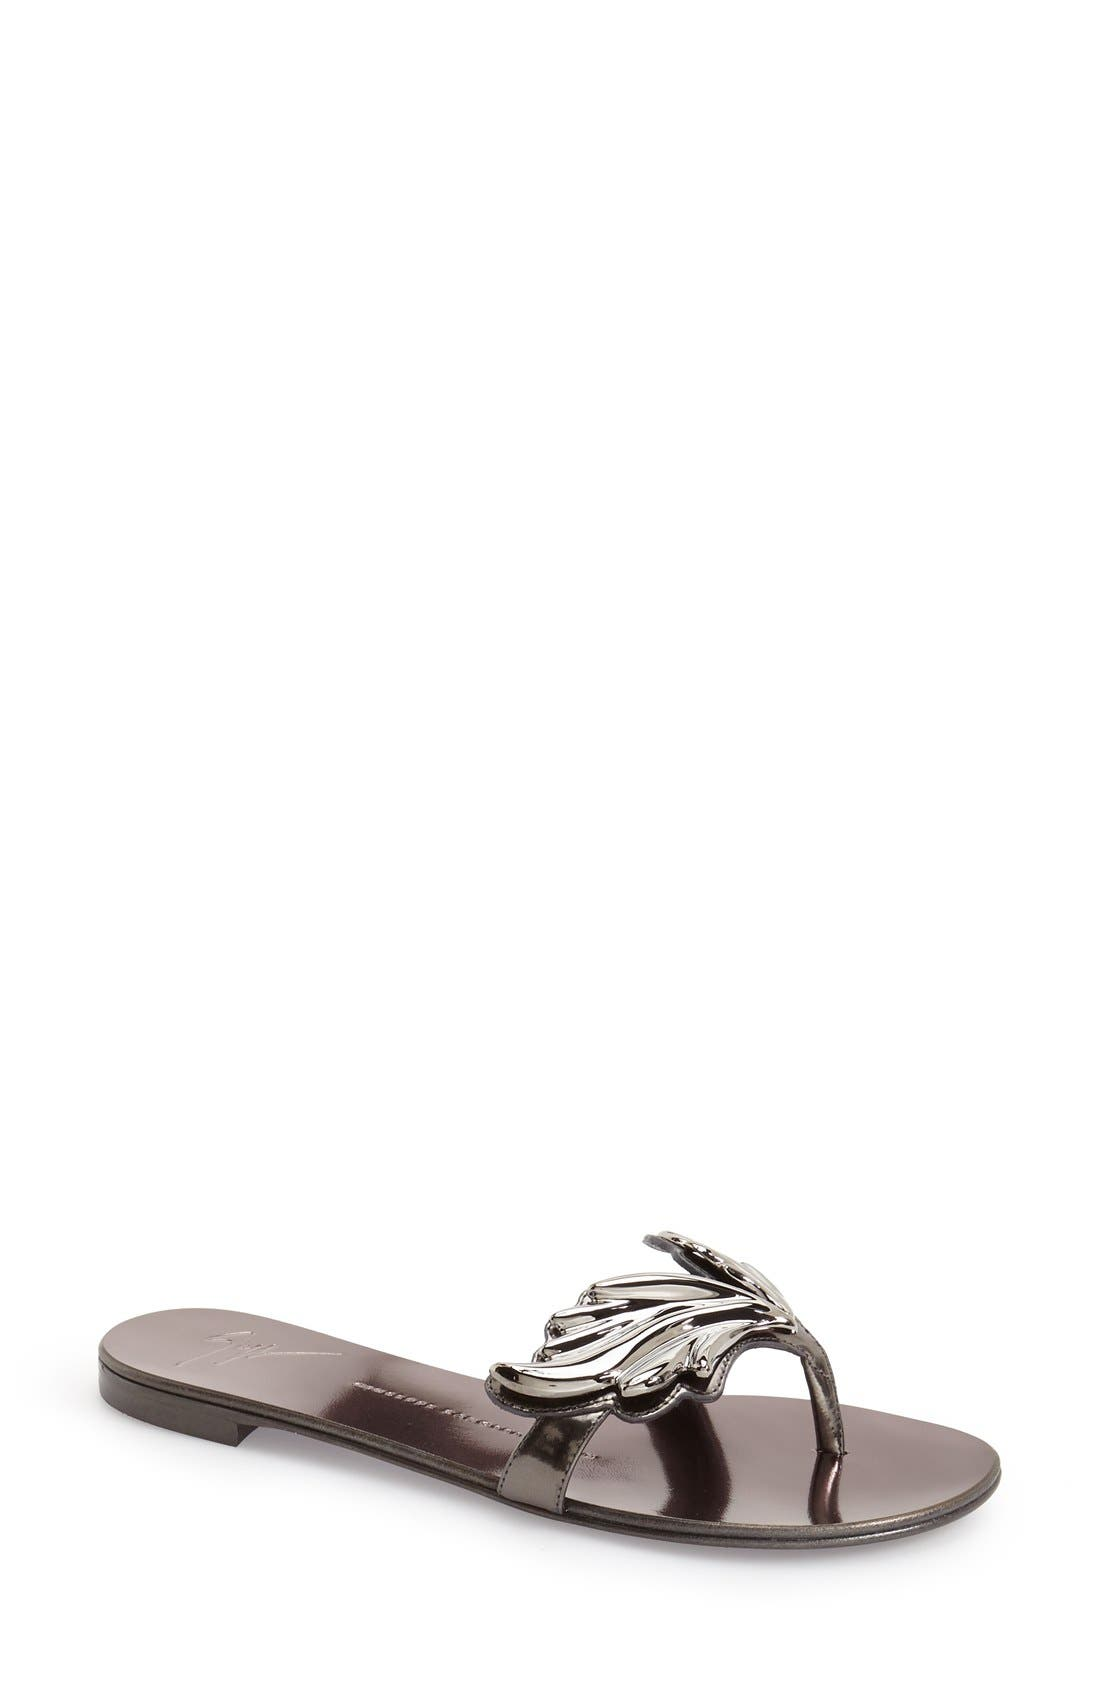 'Coline' Sandal,                         Main,                         color, Pewter Leather